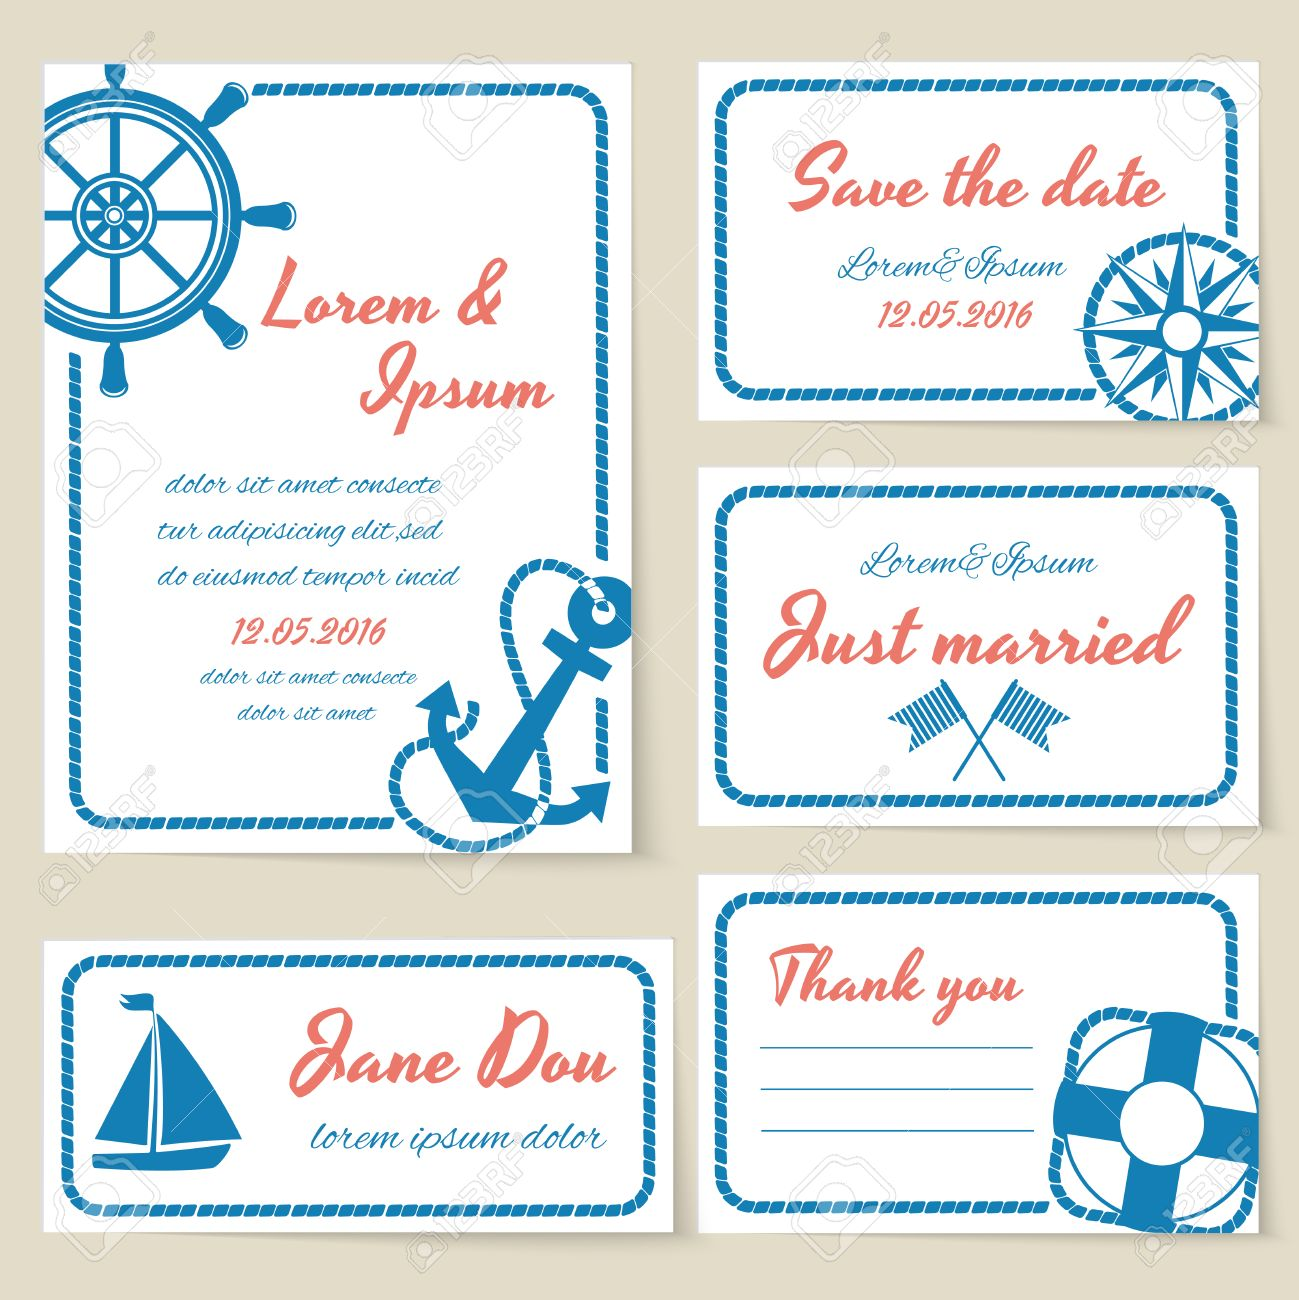 Nautical Themed Wedding Invitation And Greeting Cards With Rope ...